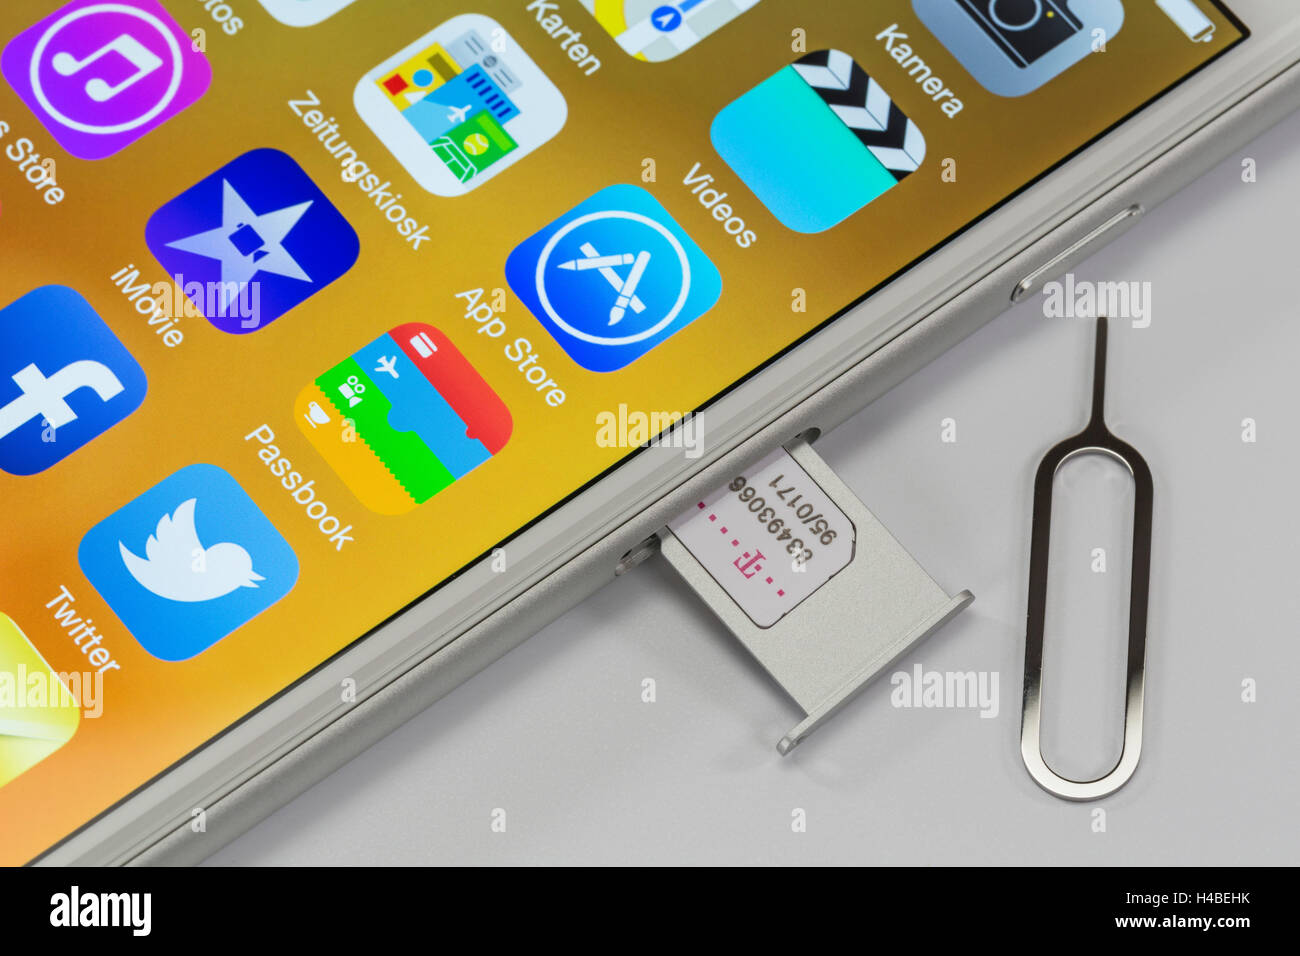 Apple iPhone 6 plus, display, case with Nano SIM card, tools, detail